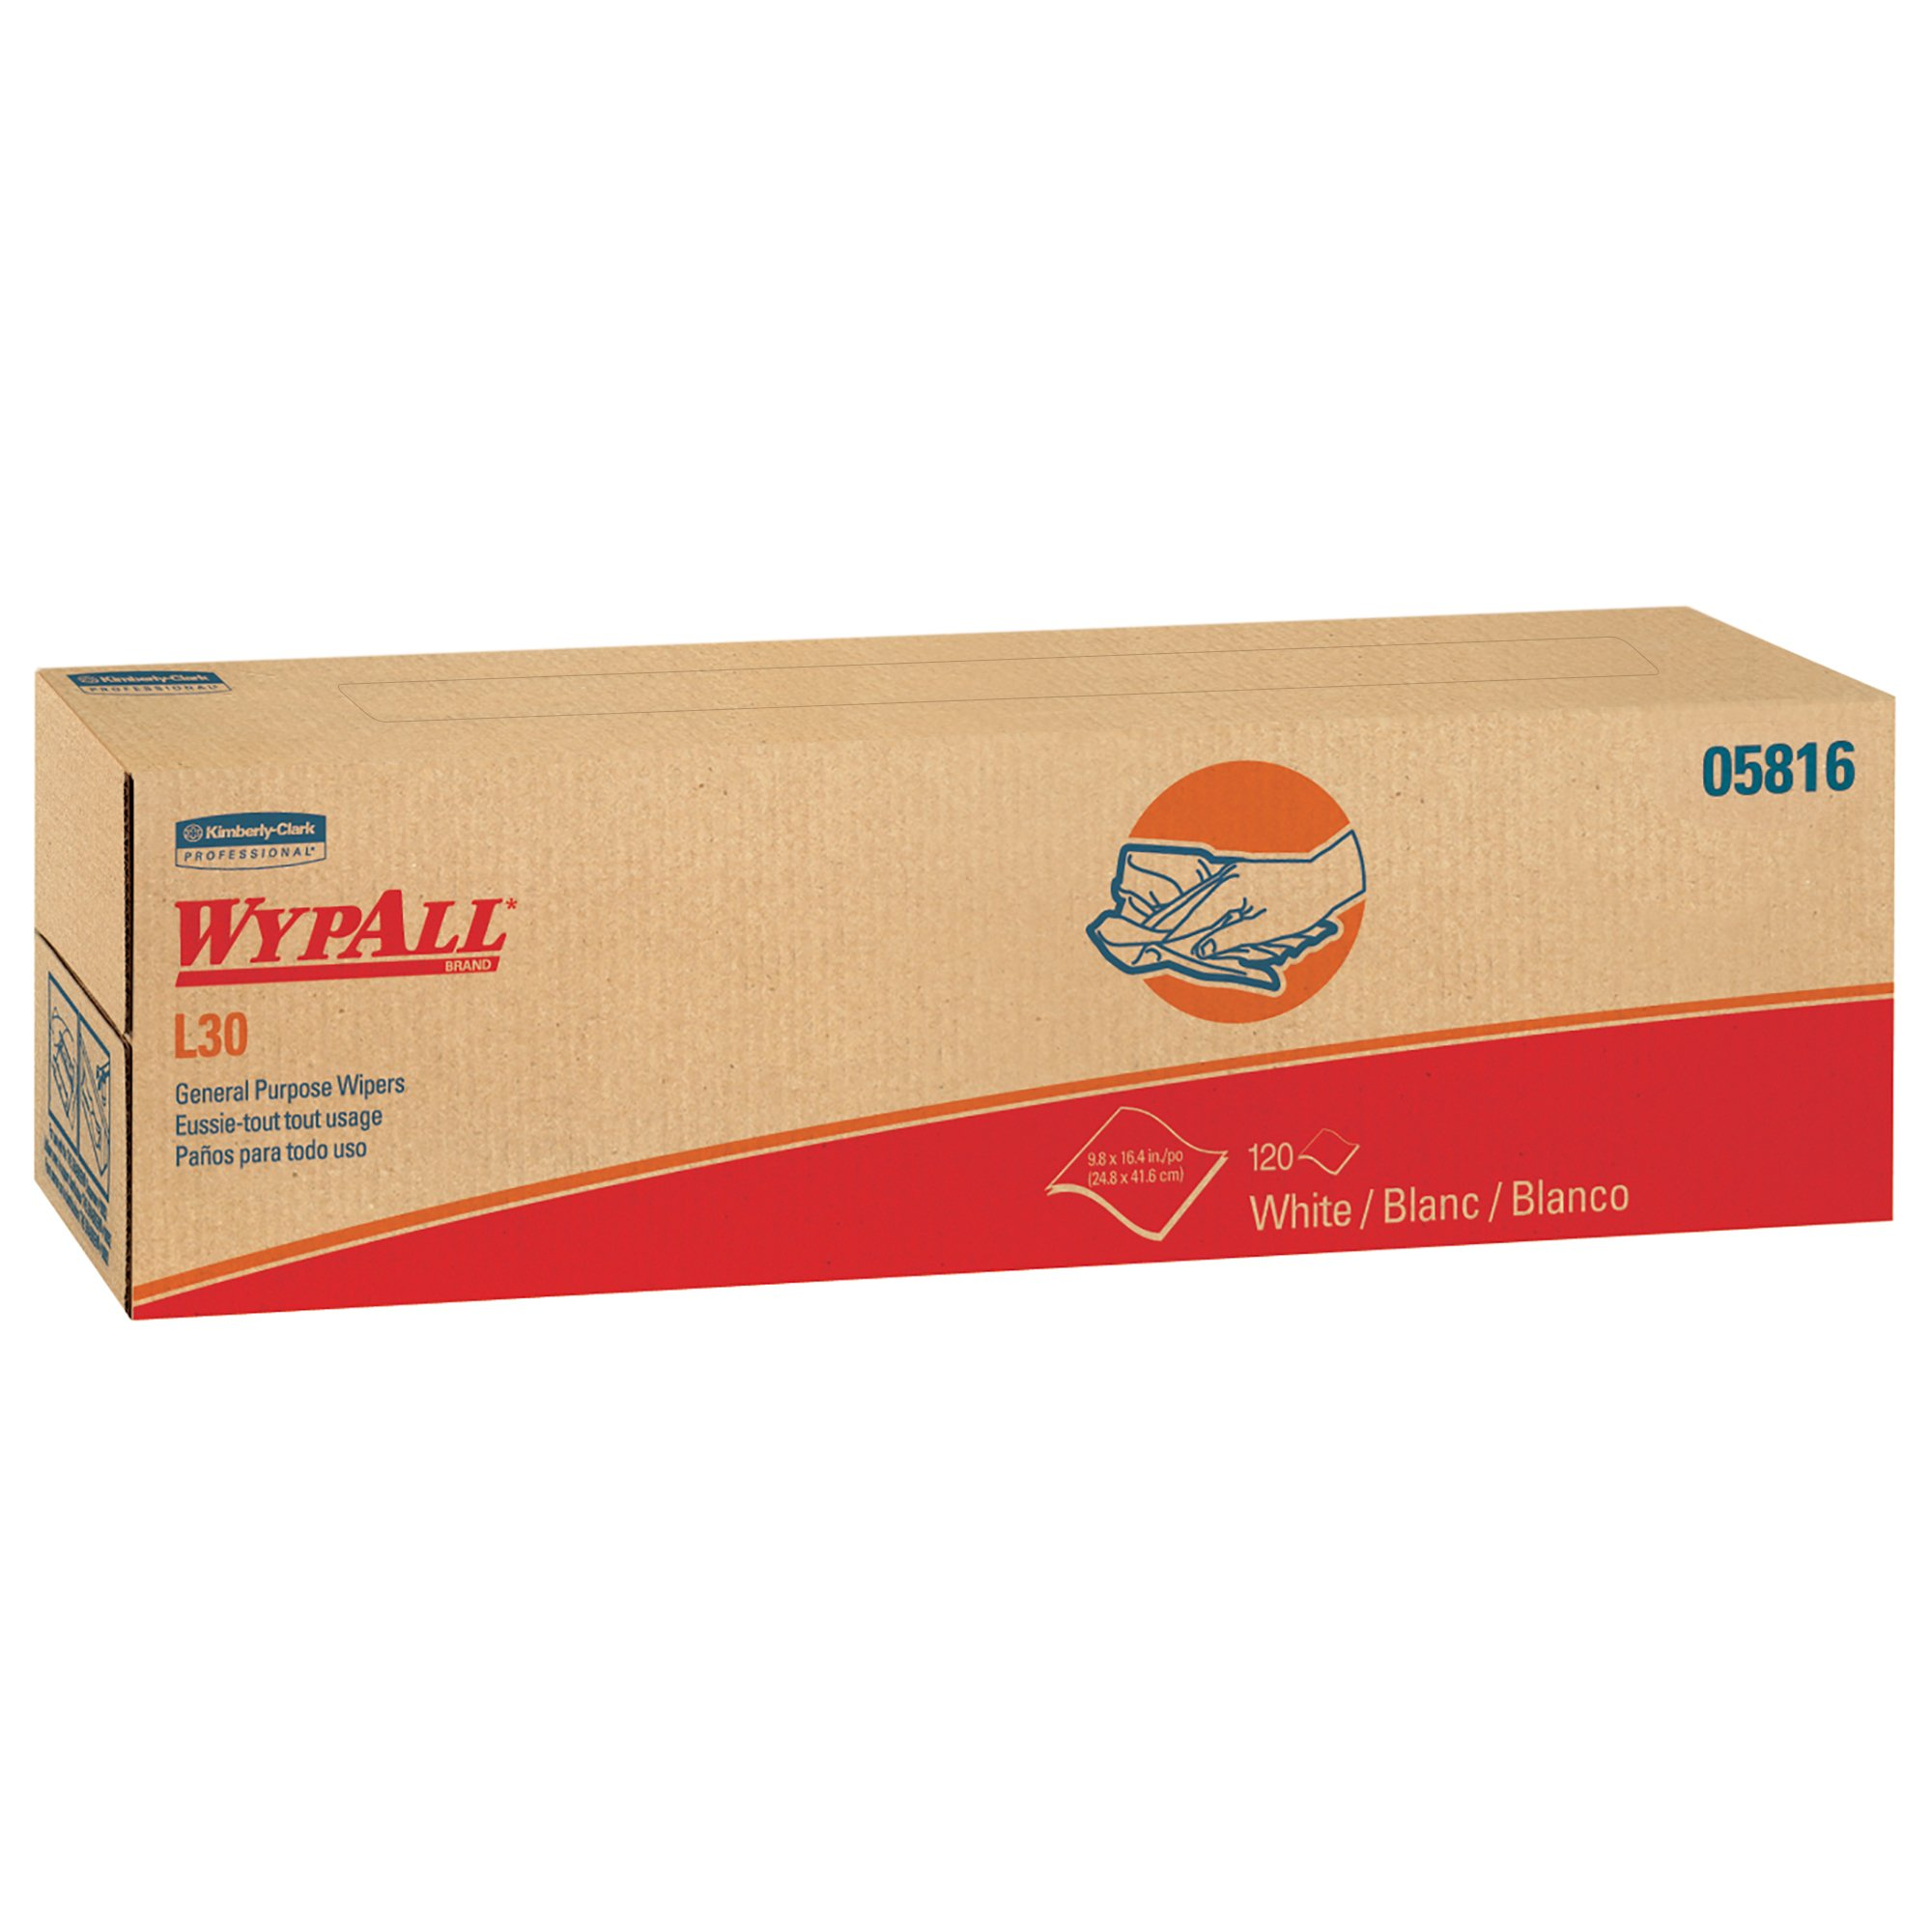 Wypall L30 DRC Towels (05816), Strong and Soft Wipes, White, 120 Sheets/Pop-Up Box, 6 Boxes/Case, 720 Wipes/Case